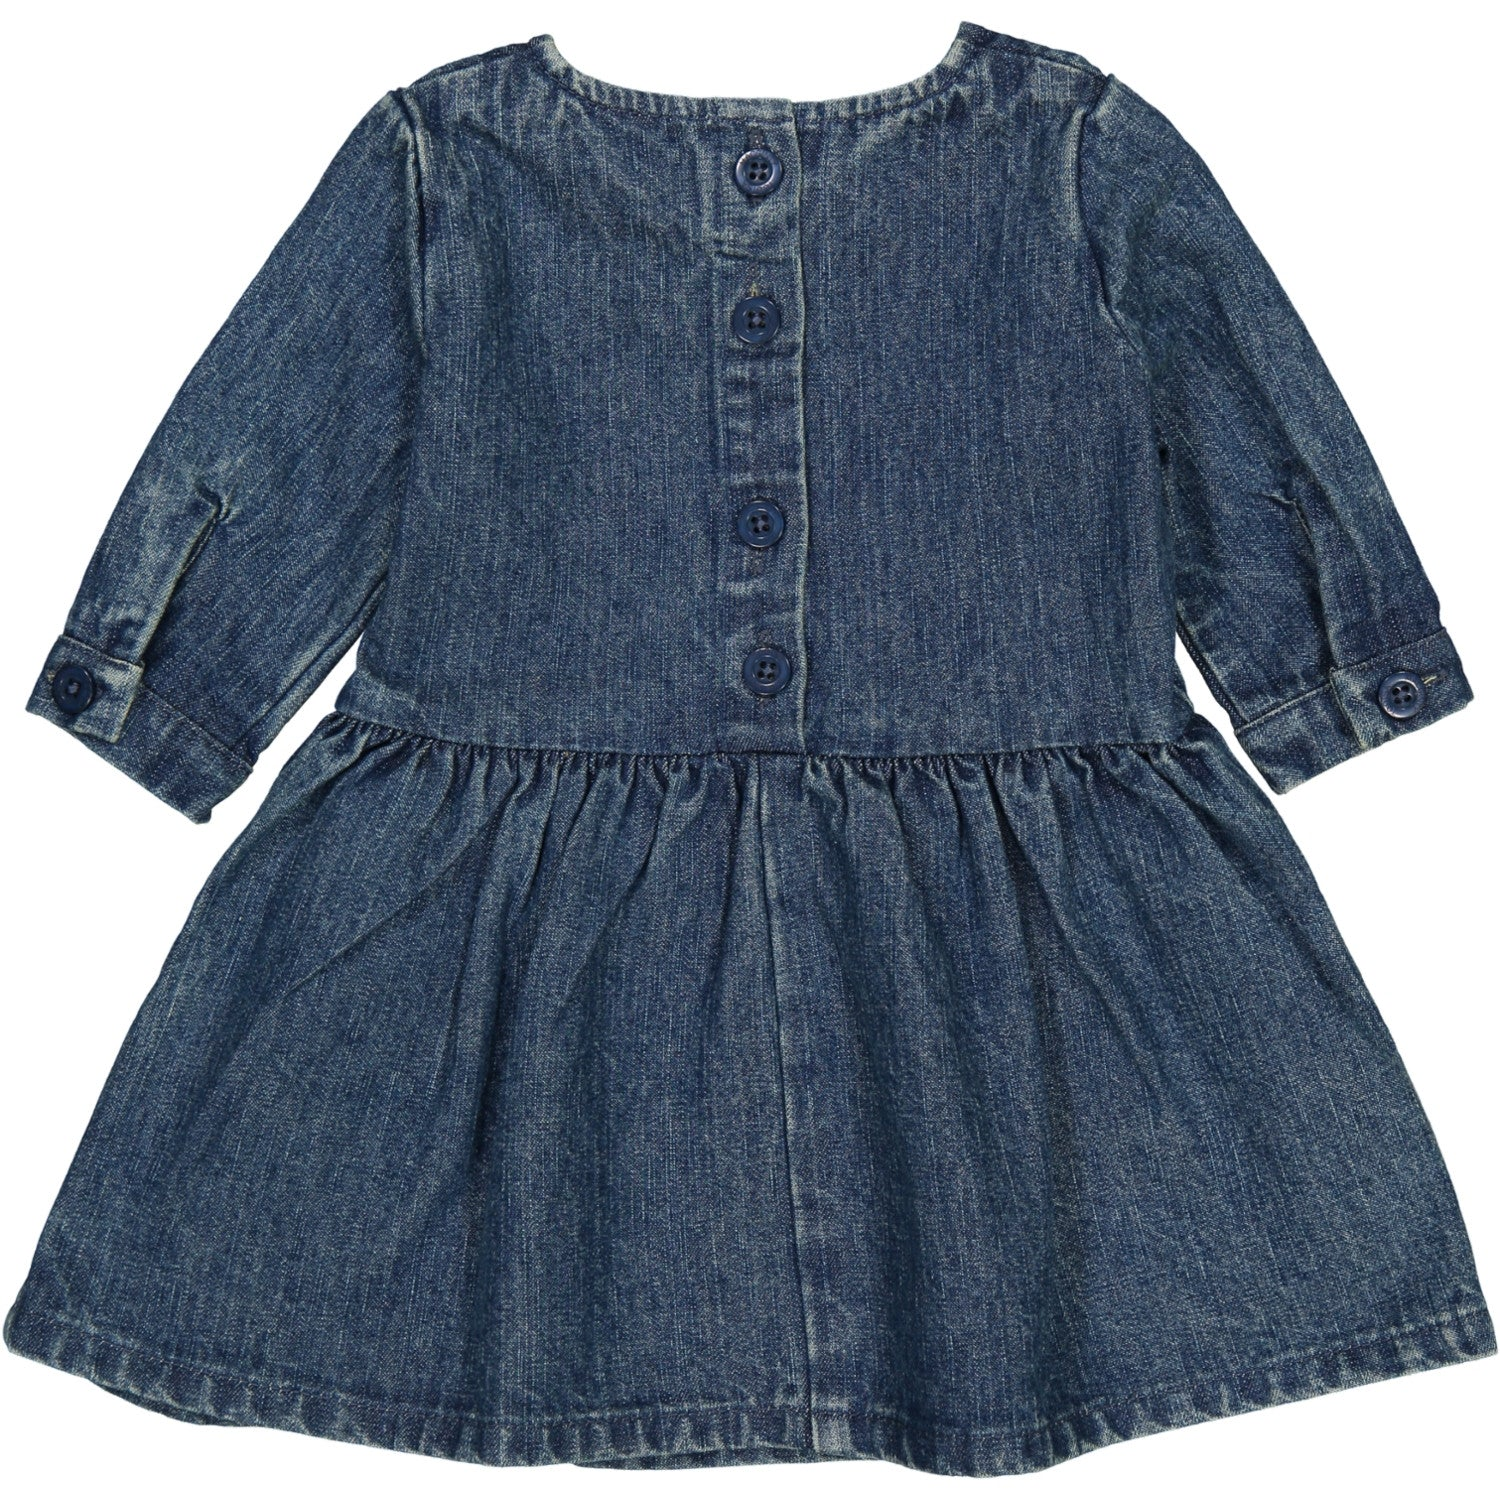 Freya Denim Smock Dress